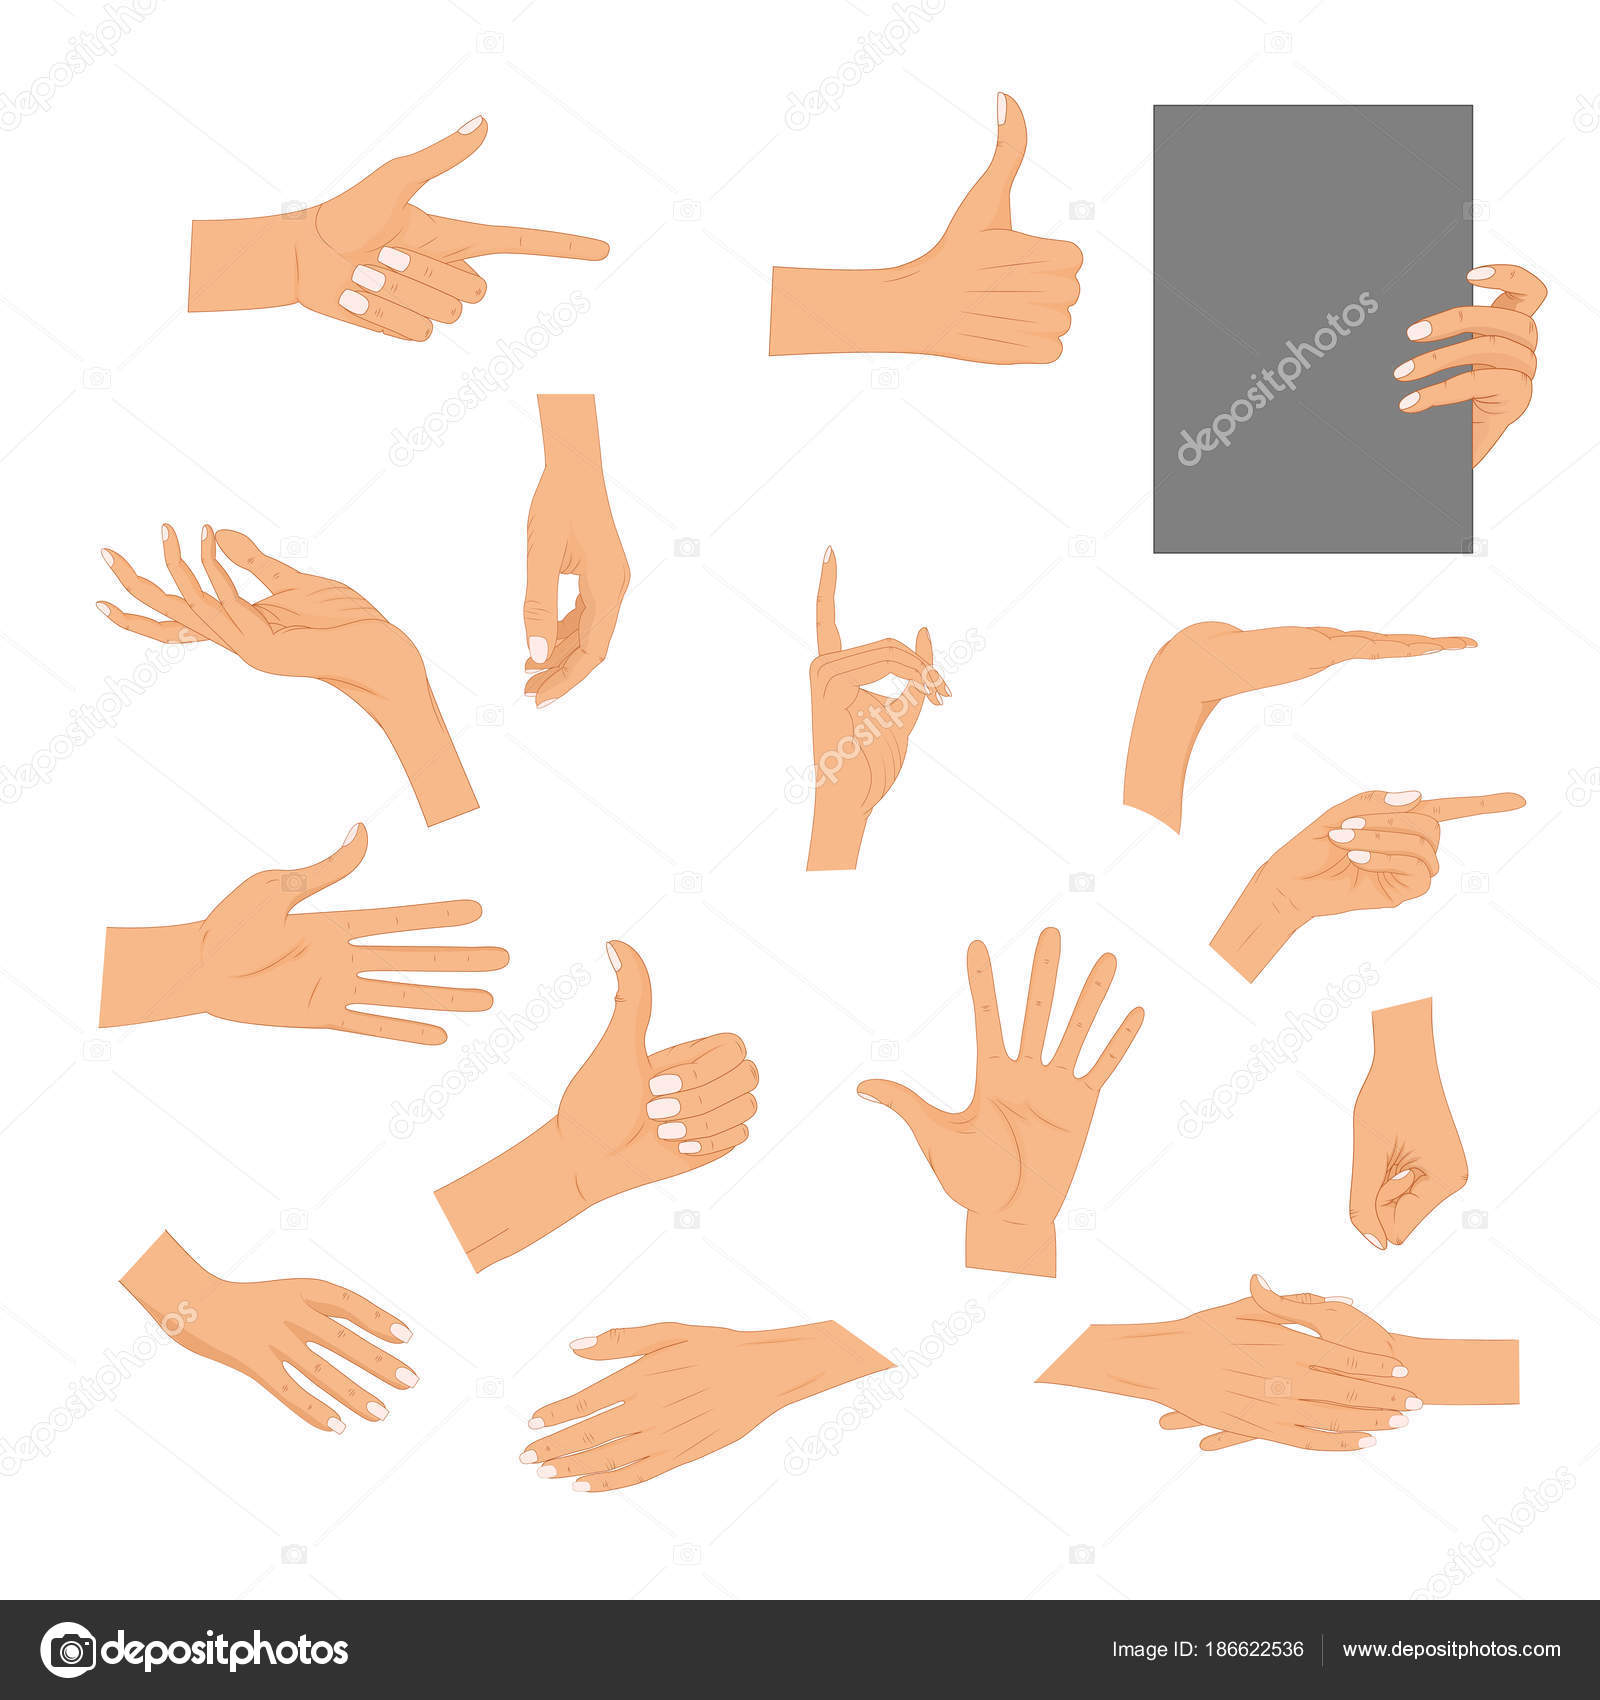 Set Hands In Different Gestures Isolated On White Background